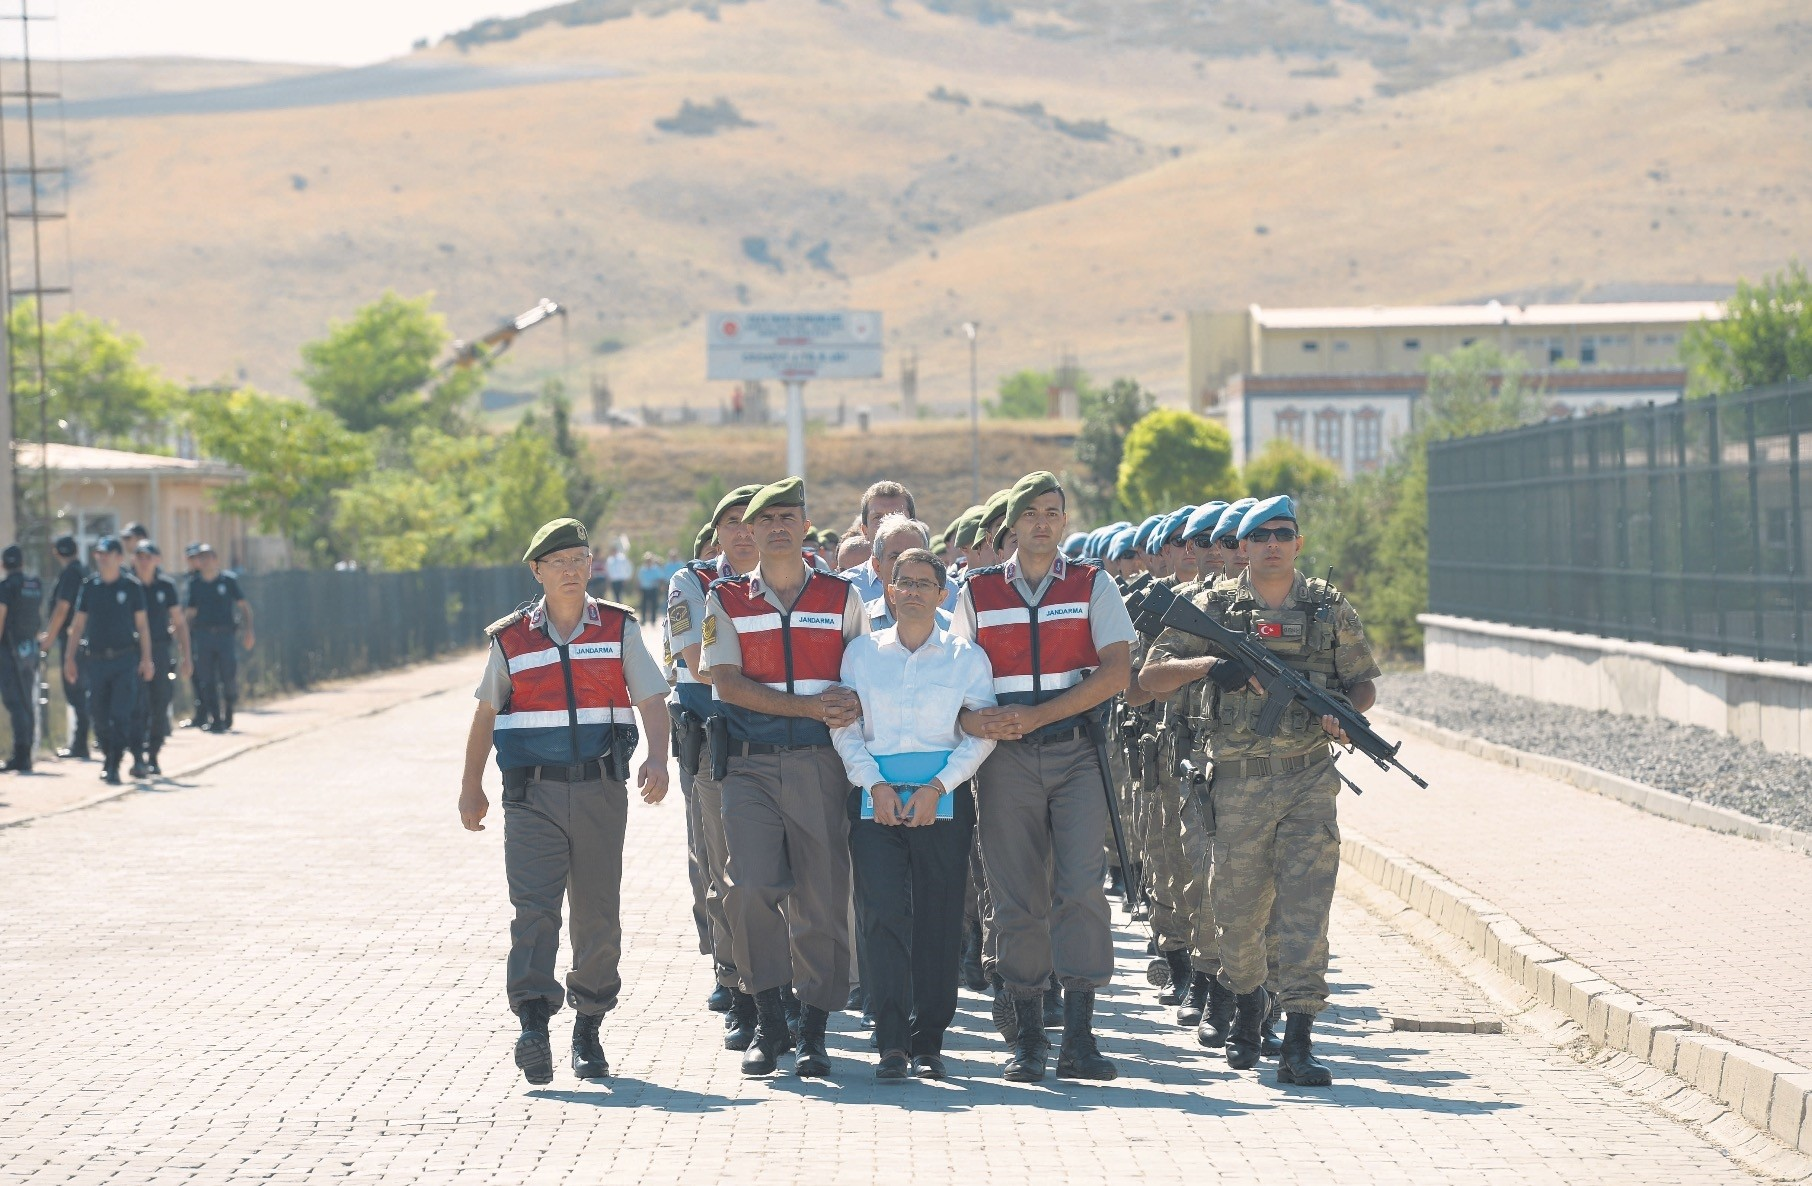 Gendarmerie officers escort Kemal Batmaz and other defendants to the courtroom for a coup trial. Batmaz is one of the alleged masterminds of the coup bid for FETu00d6 and was captured at Aku0131ncu0131 Air Base.